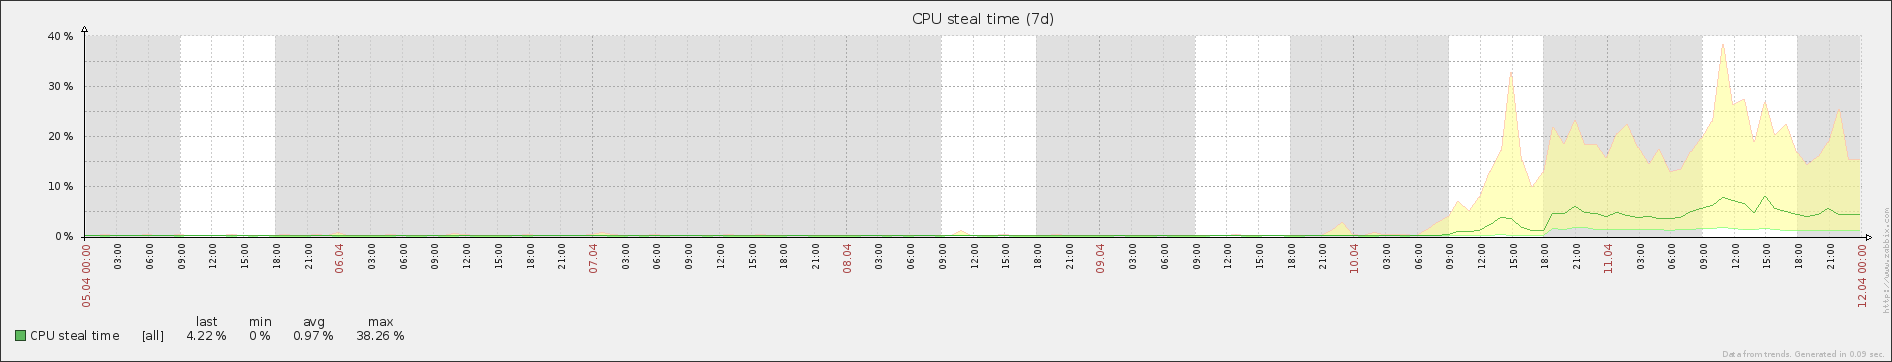 Sudden increase in stolen CPU time.